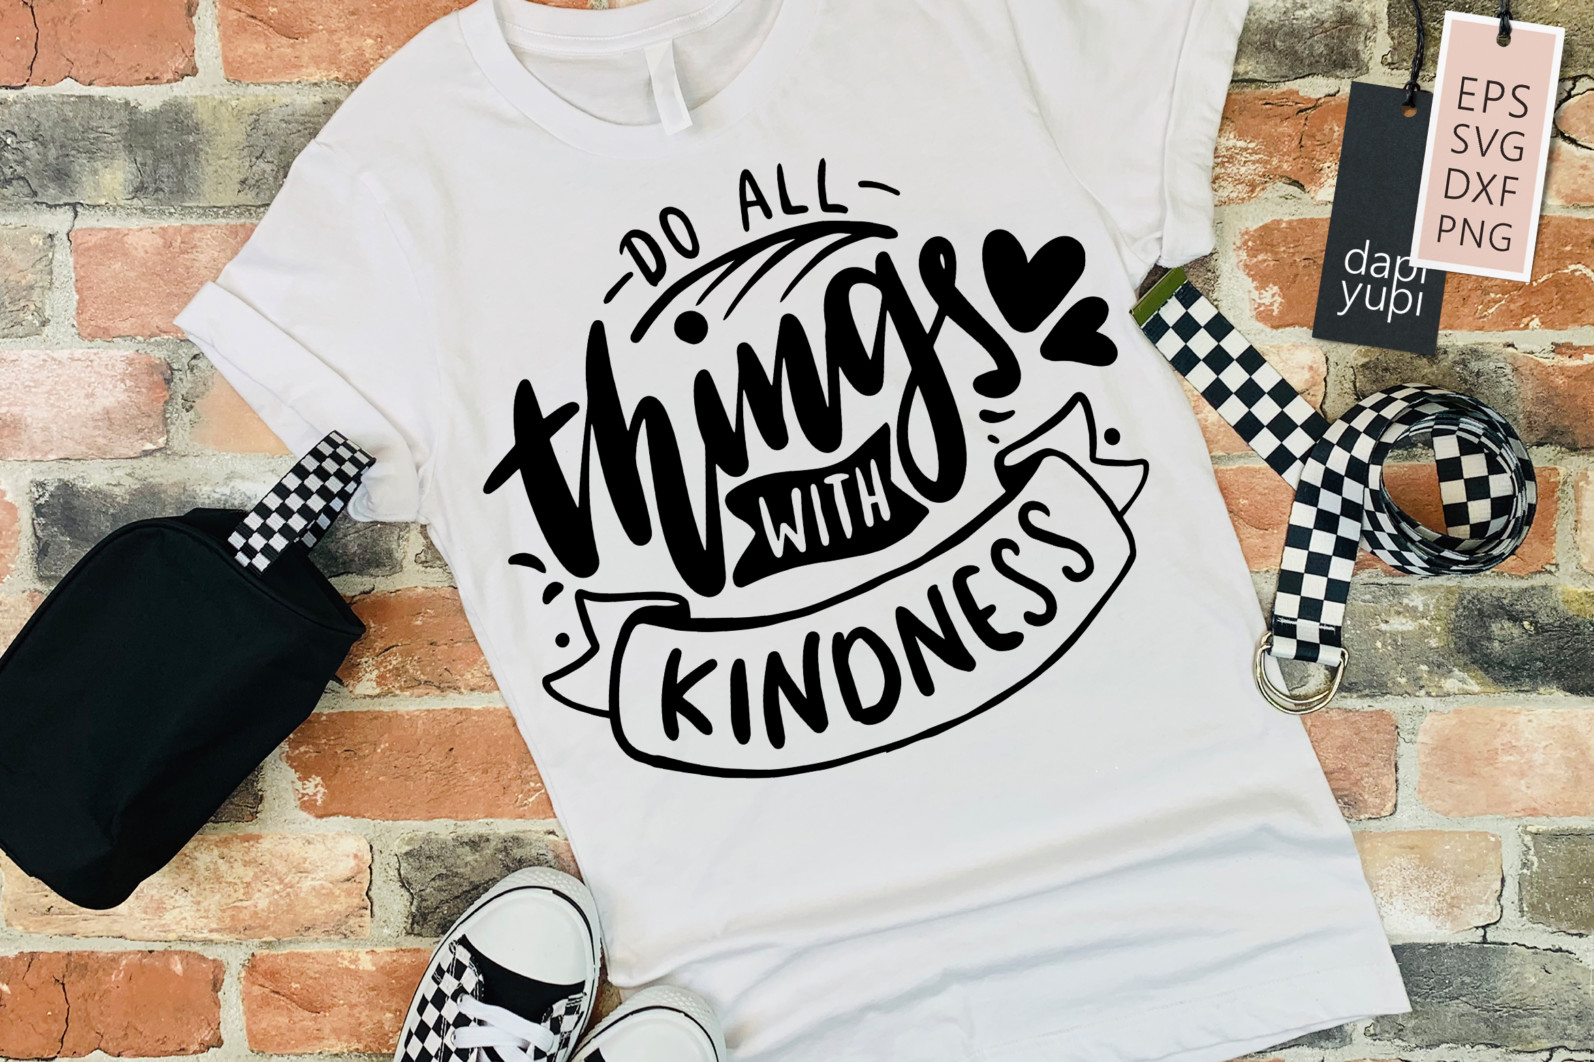 Kindness Lettering Quotes SVG Do All Things With Kindness - kindness5a -